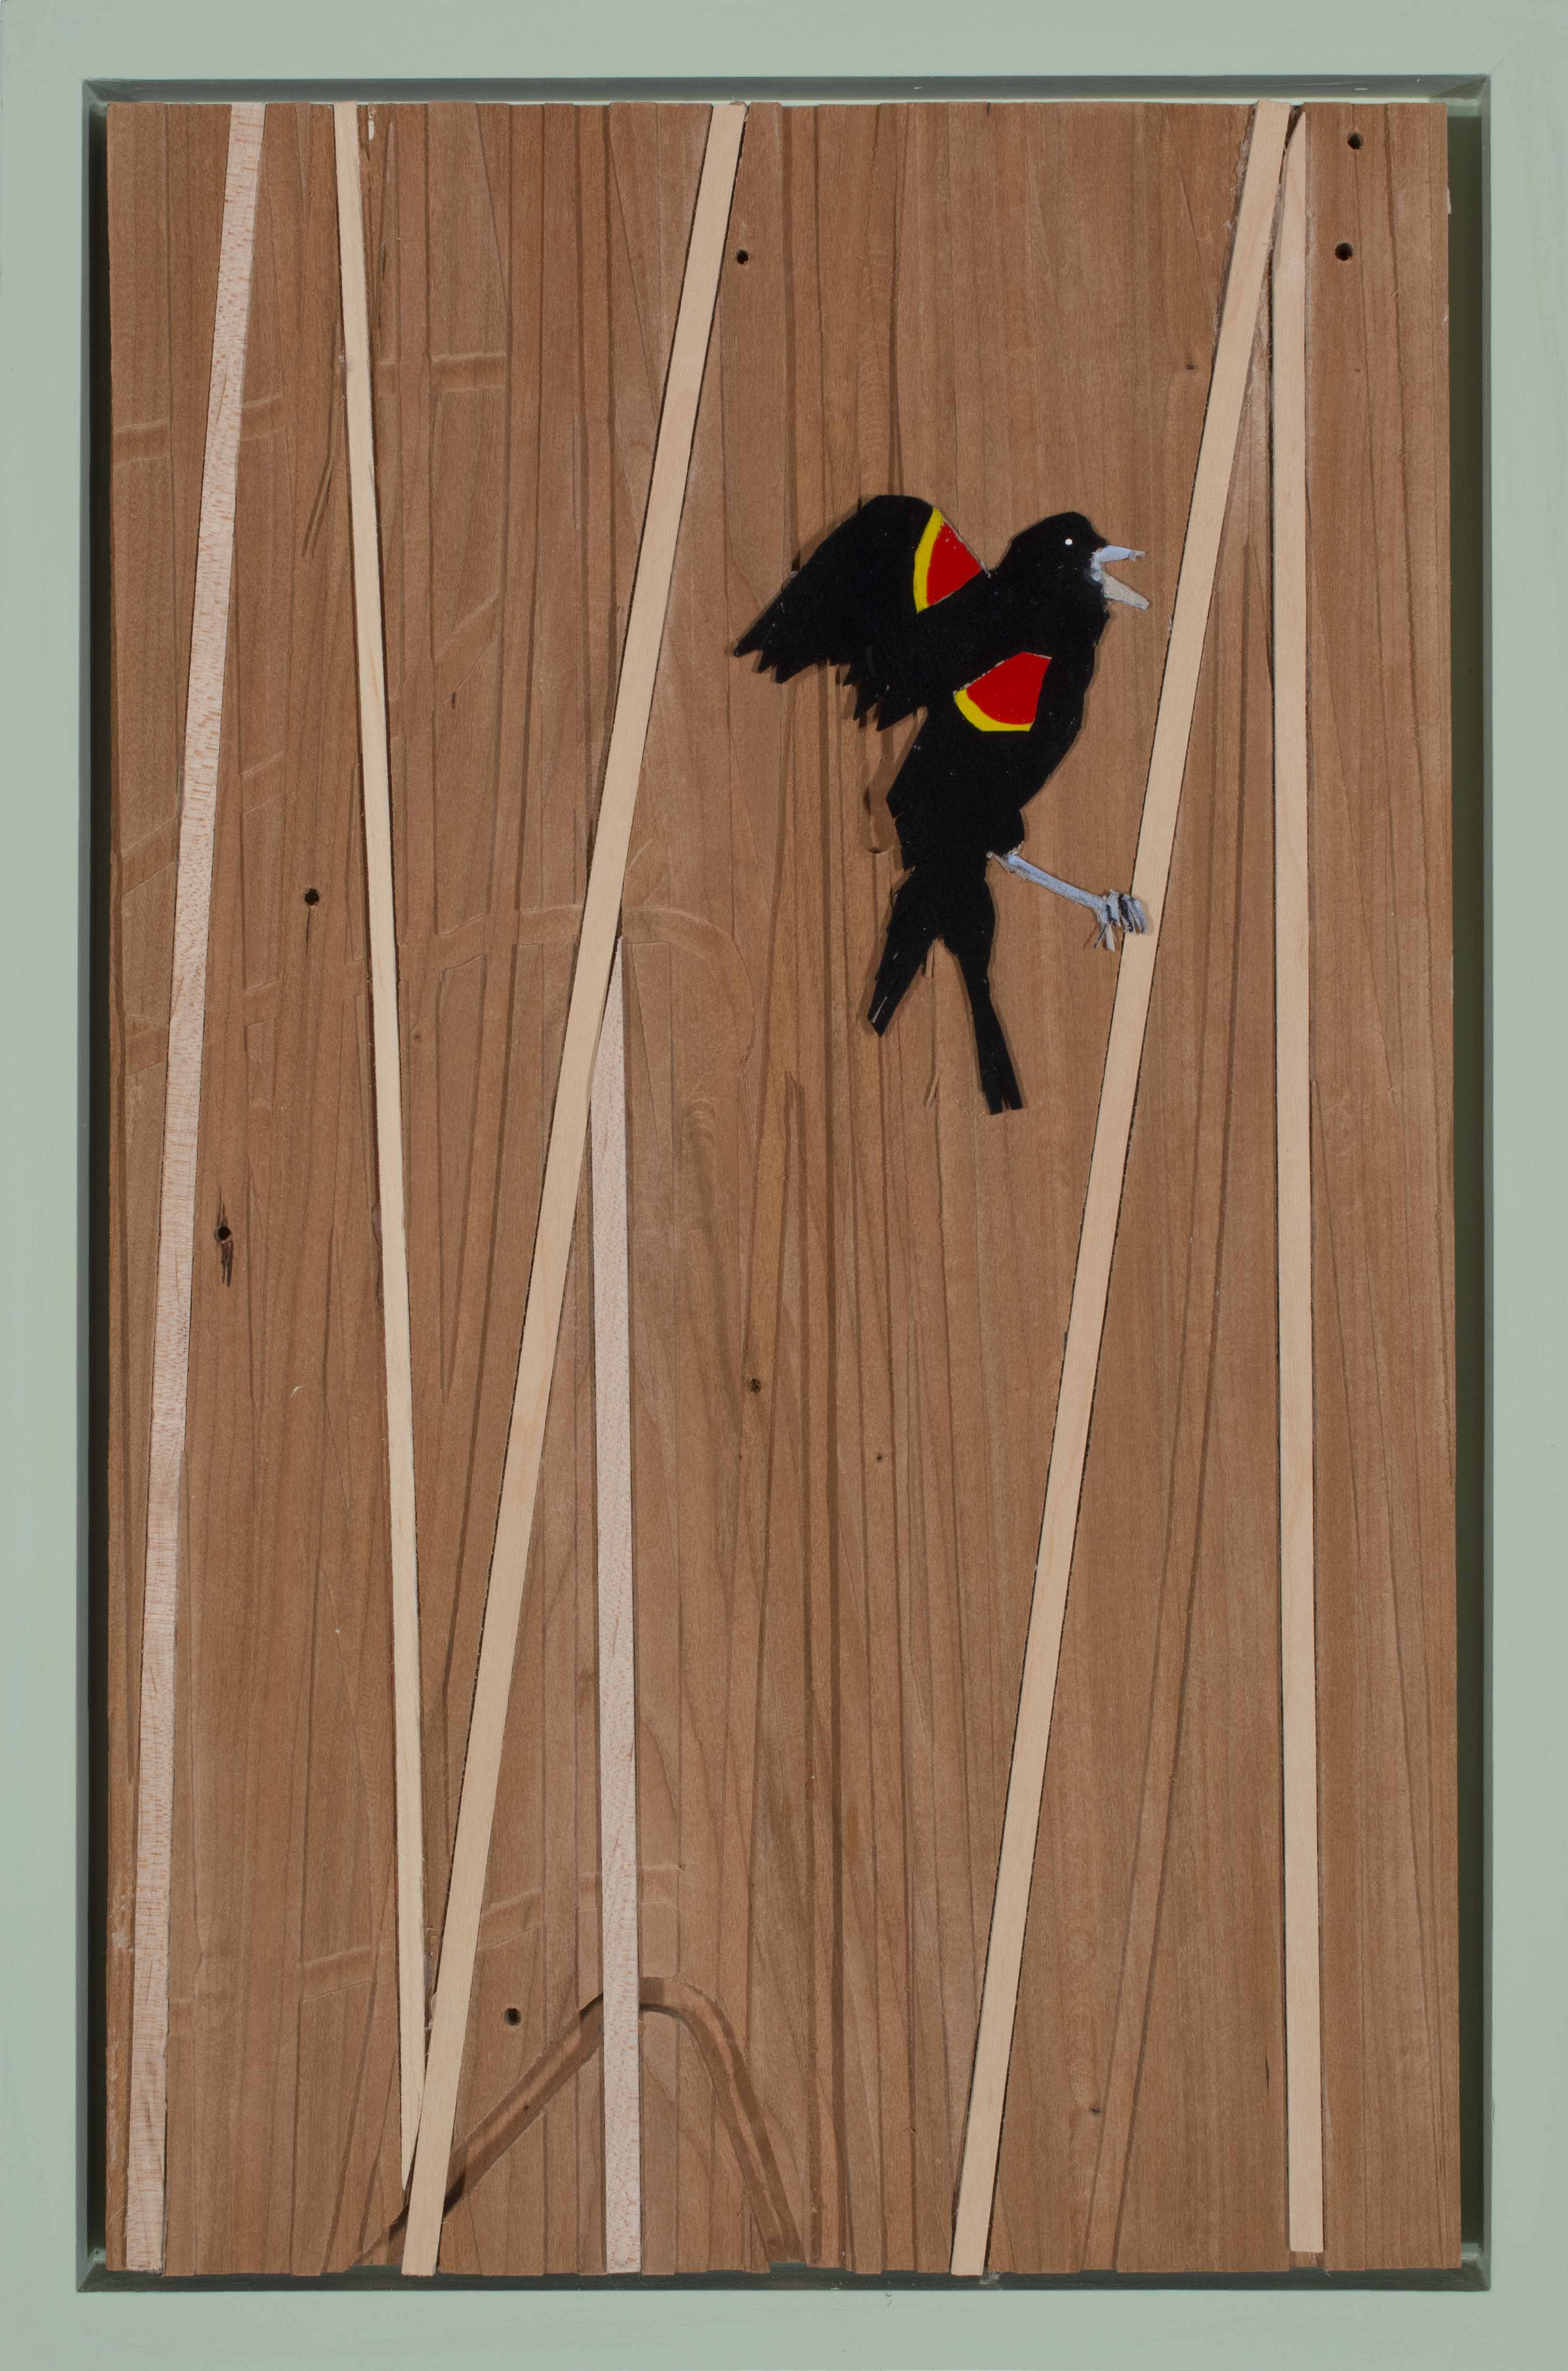 Red-winged Black Bird in Reeds #3, 2018, acrylic and cardboard on wood, 18 x 12 inches